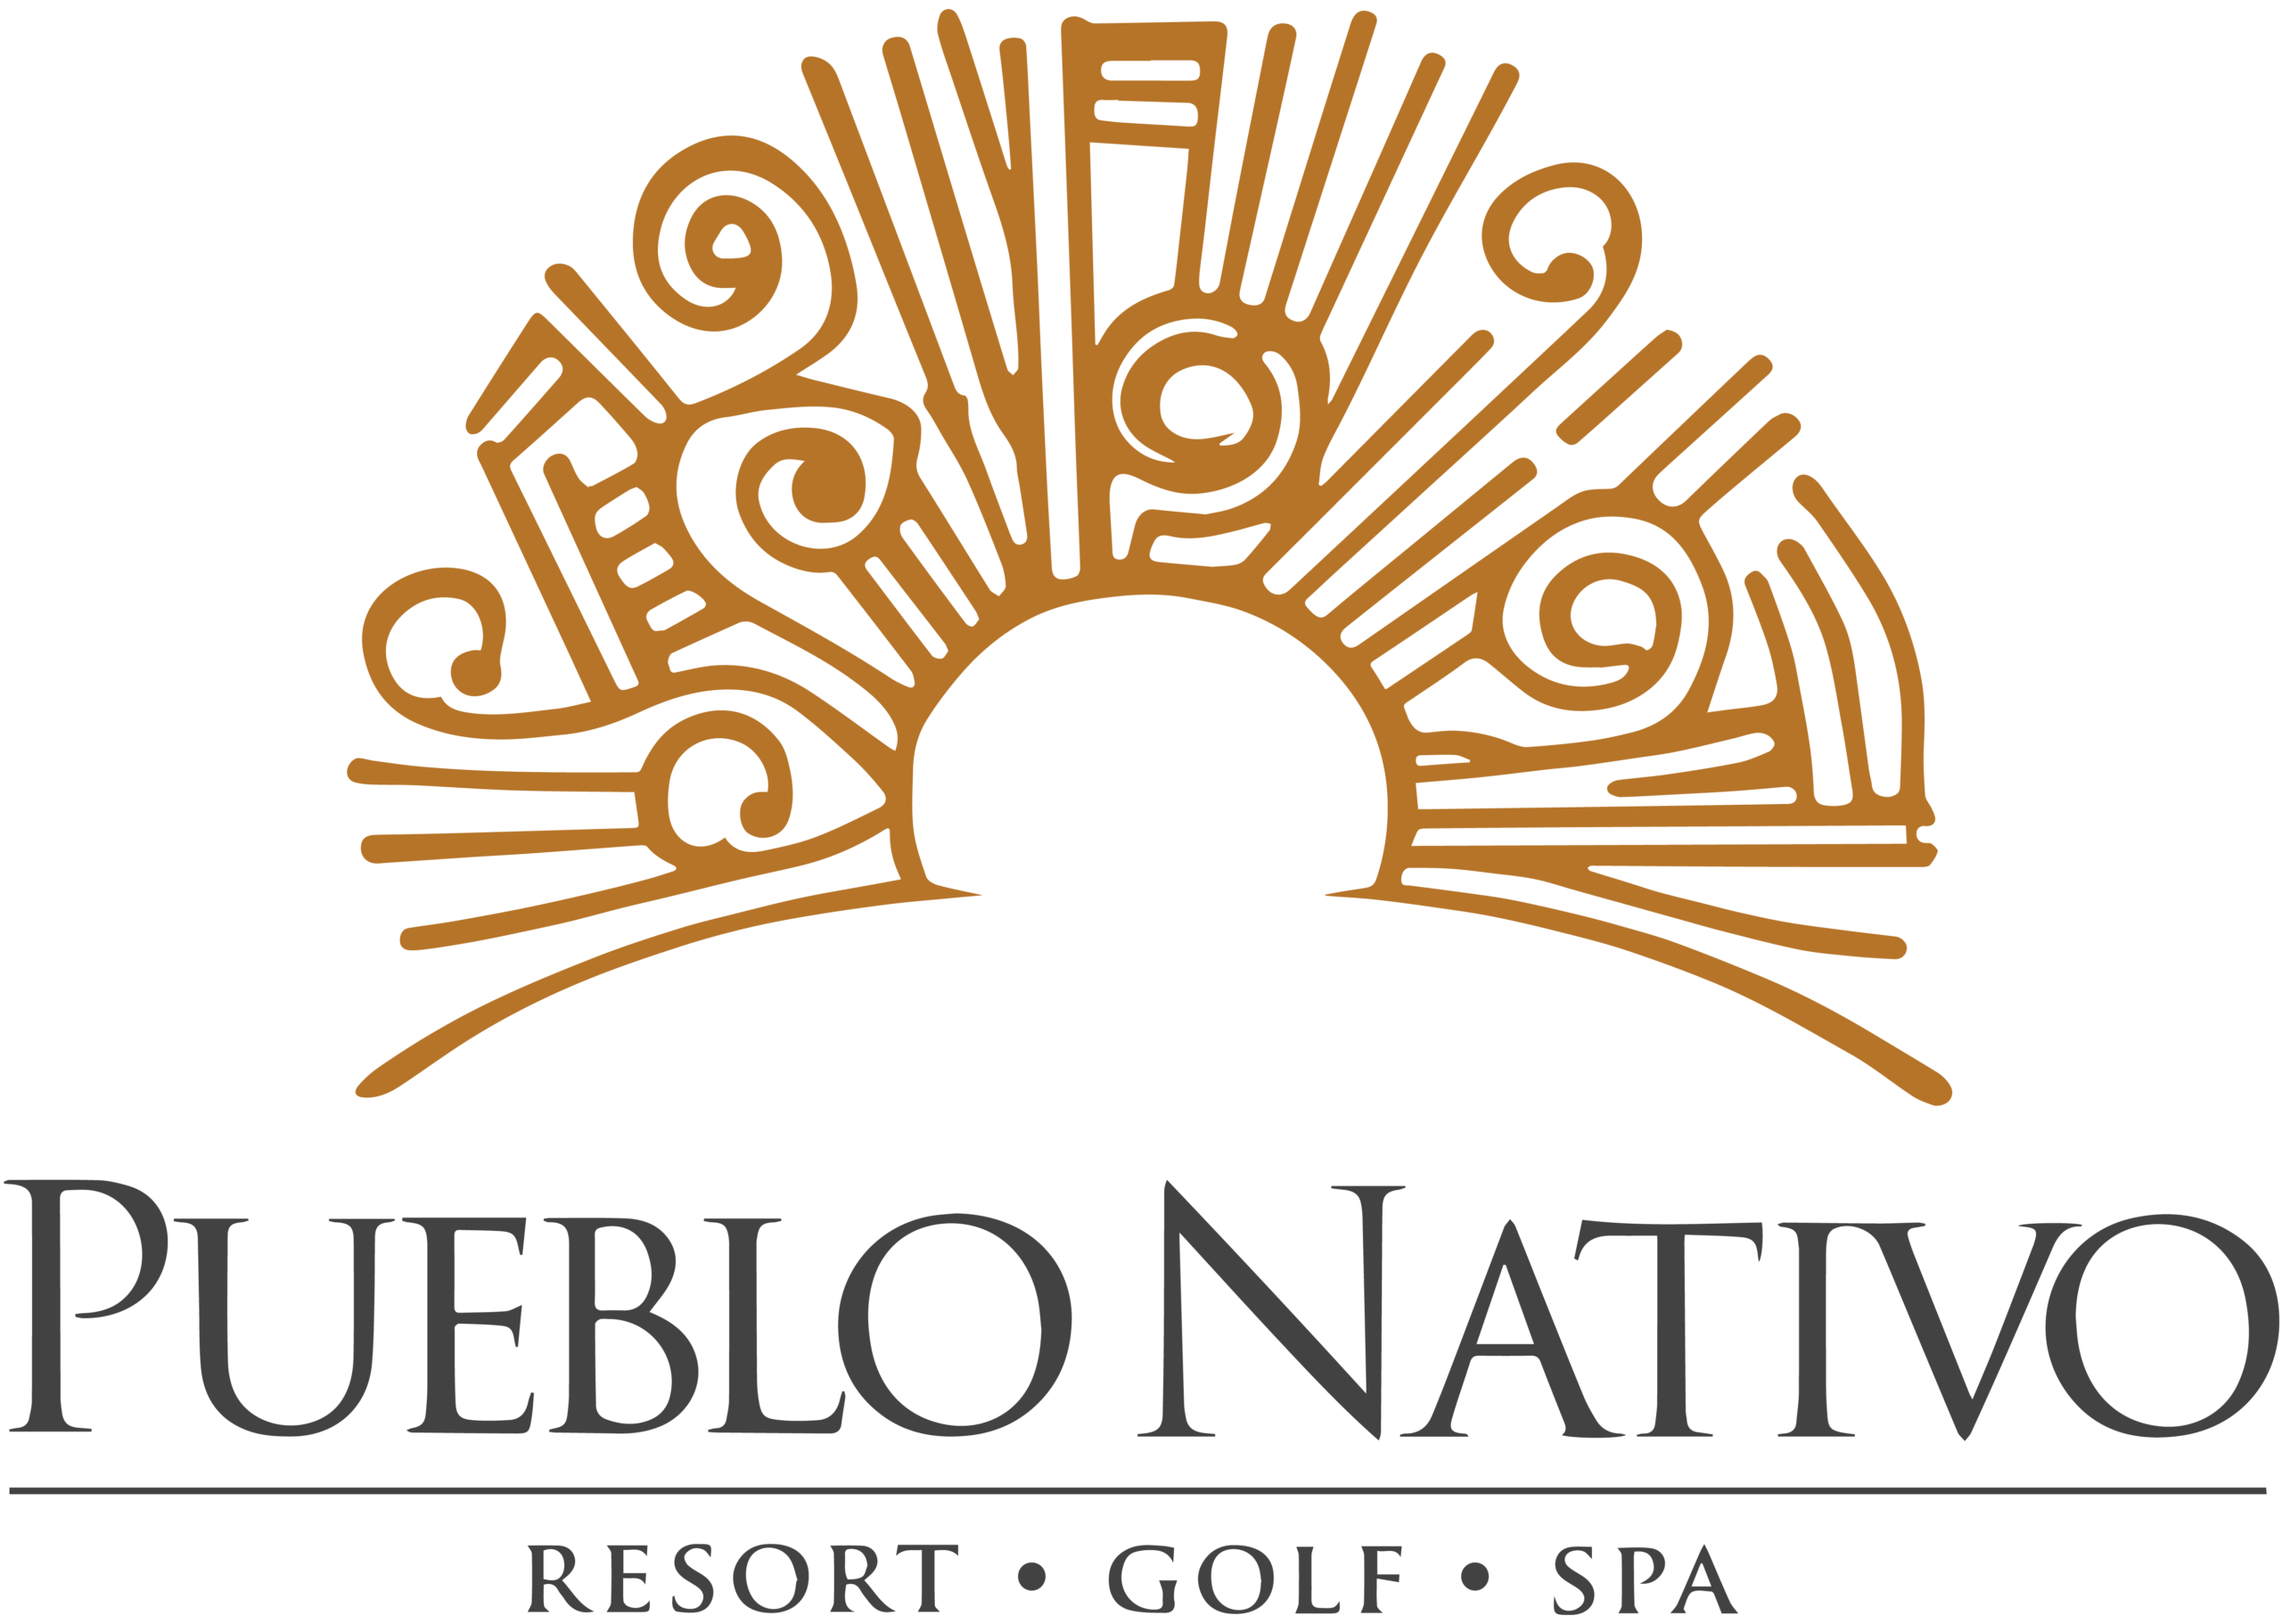 Pueblo Nativo Resort